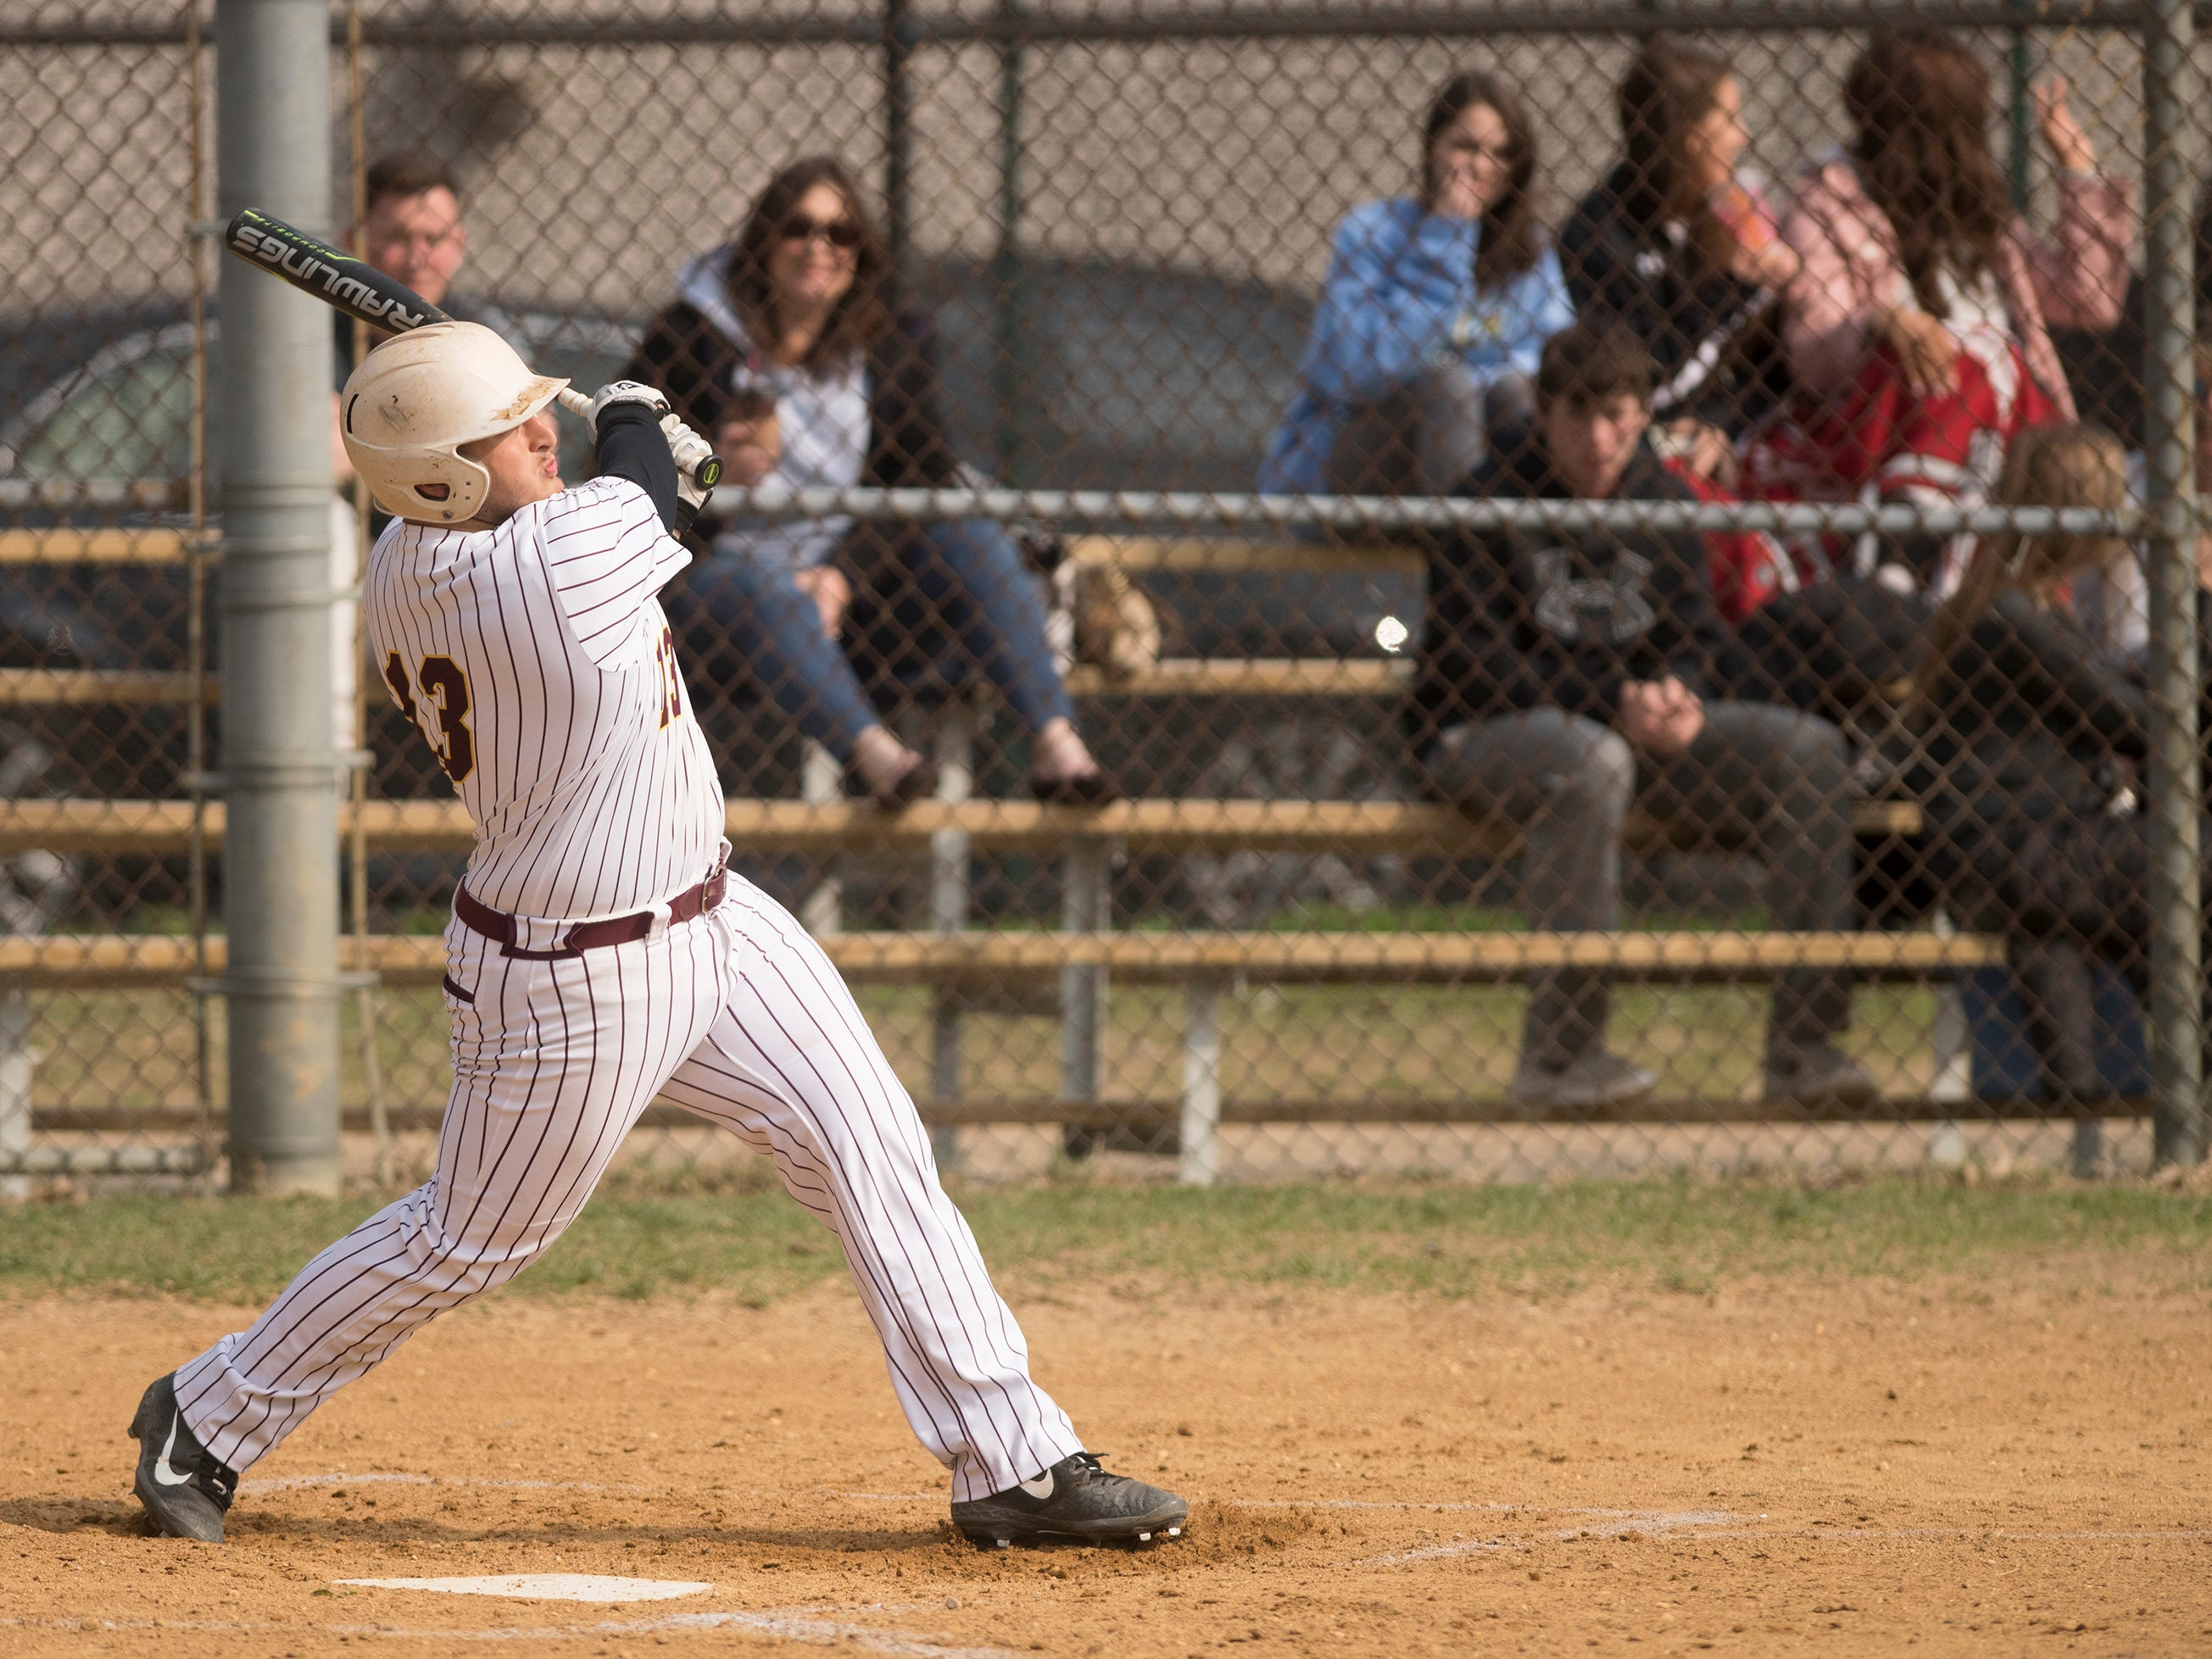 Gloucester Catholic's Lillo Paxia connects for an RBI single during the first inning of Gloucester Catholic's 13- 0 win over Pennsville at Joe Barth Field in Brooklawn on Wednesday, April 17, 2019.